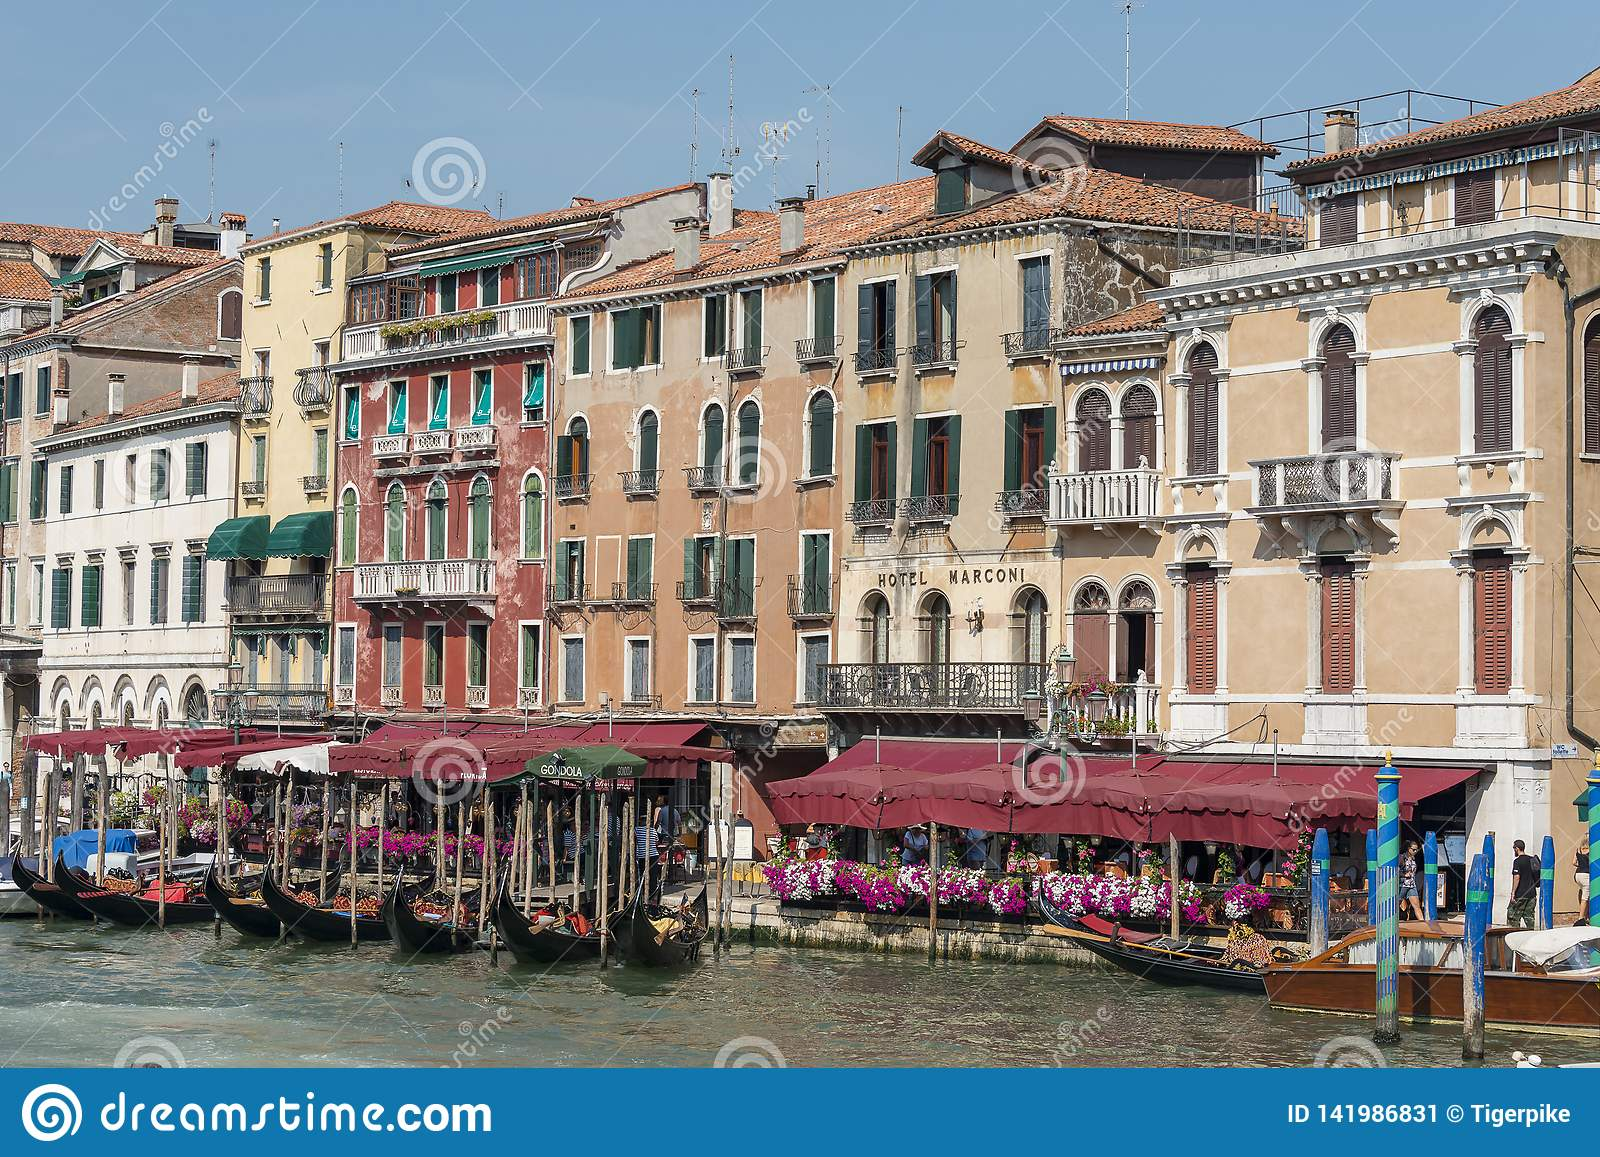 Hotel Marconi Venice Italy editorial photo. Image of ...